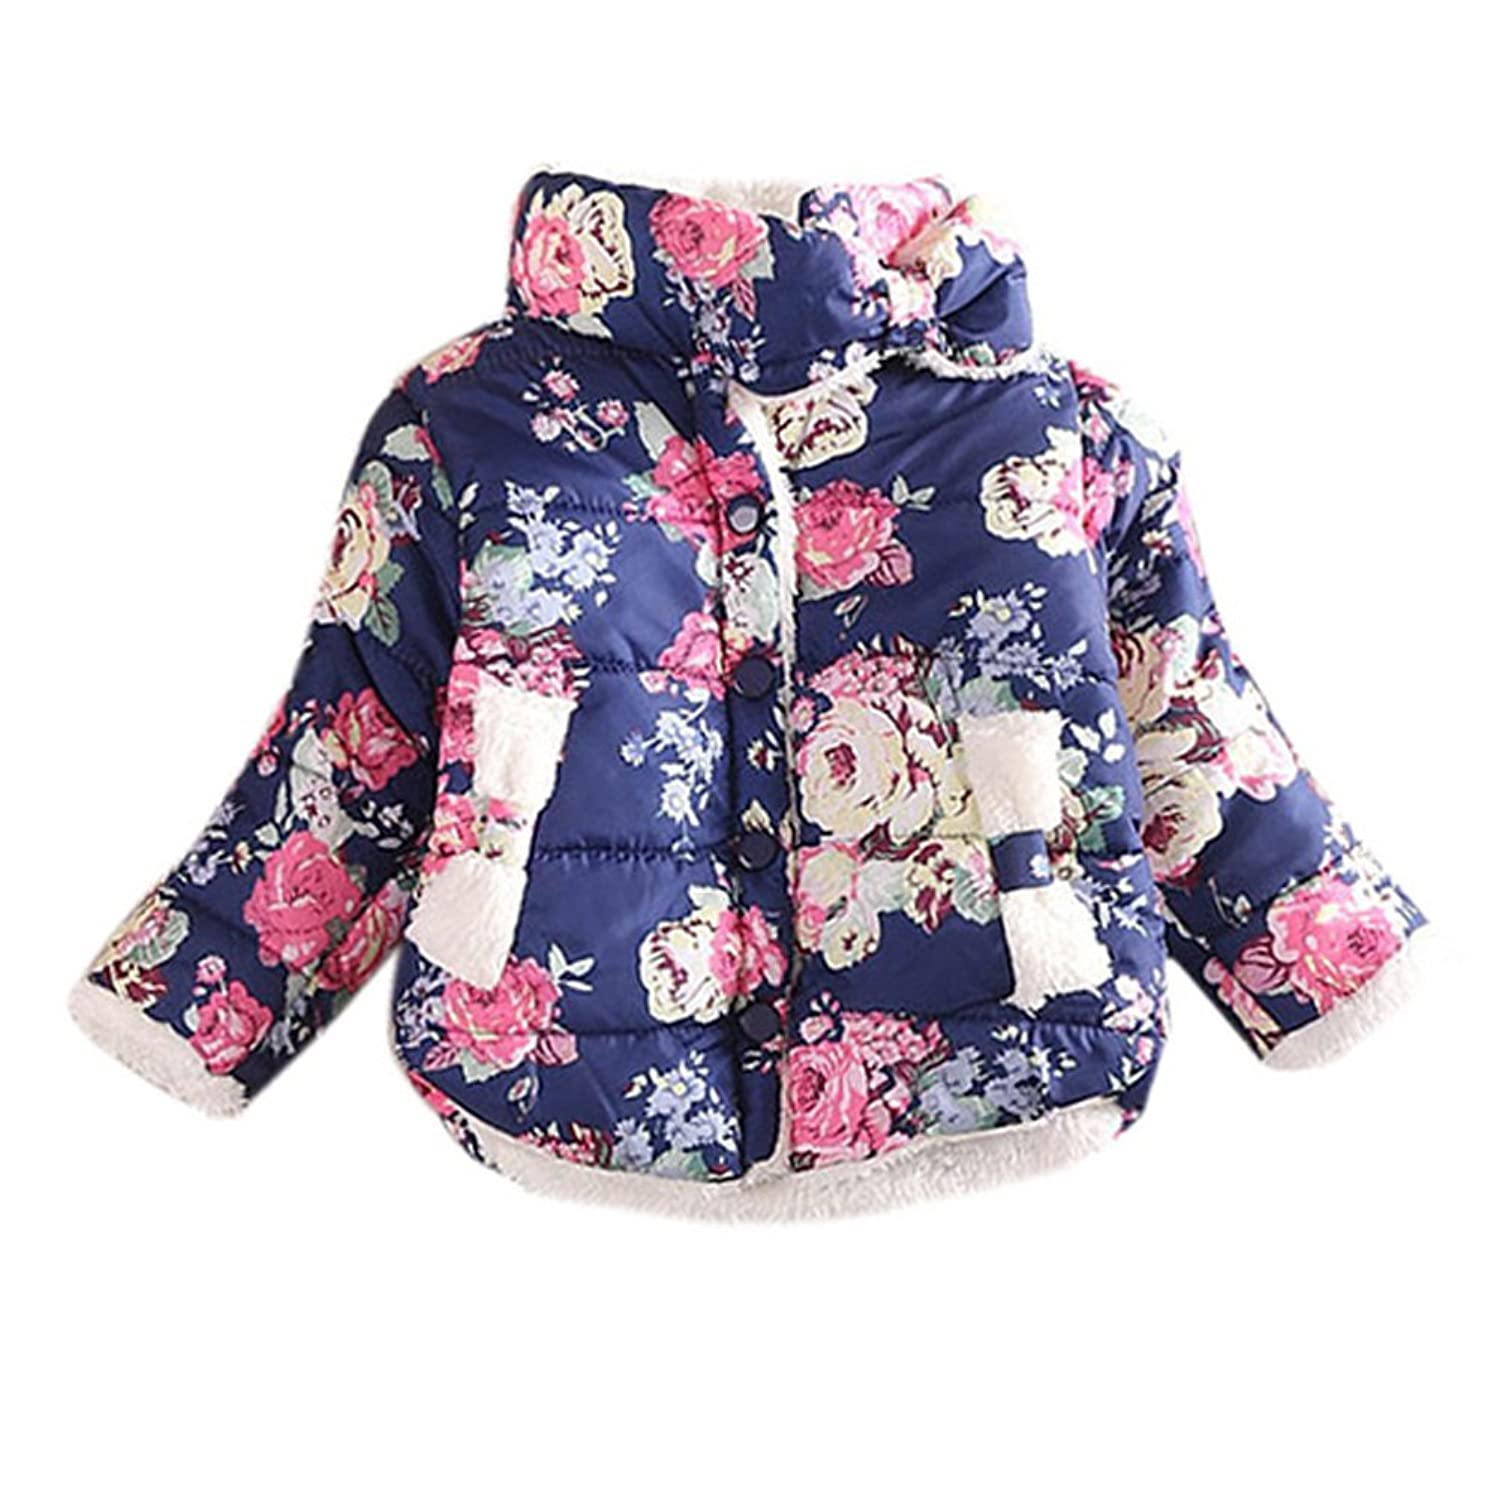 Urparcel Baby Girls Jackets Outerwear Winter Warm Down Coats Thick Floral Bow kamiwa 2018 embroidery fruit girls winter coats and jackets kids outwear down jacket clothes parkas children baby girls clothing